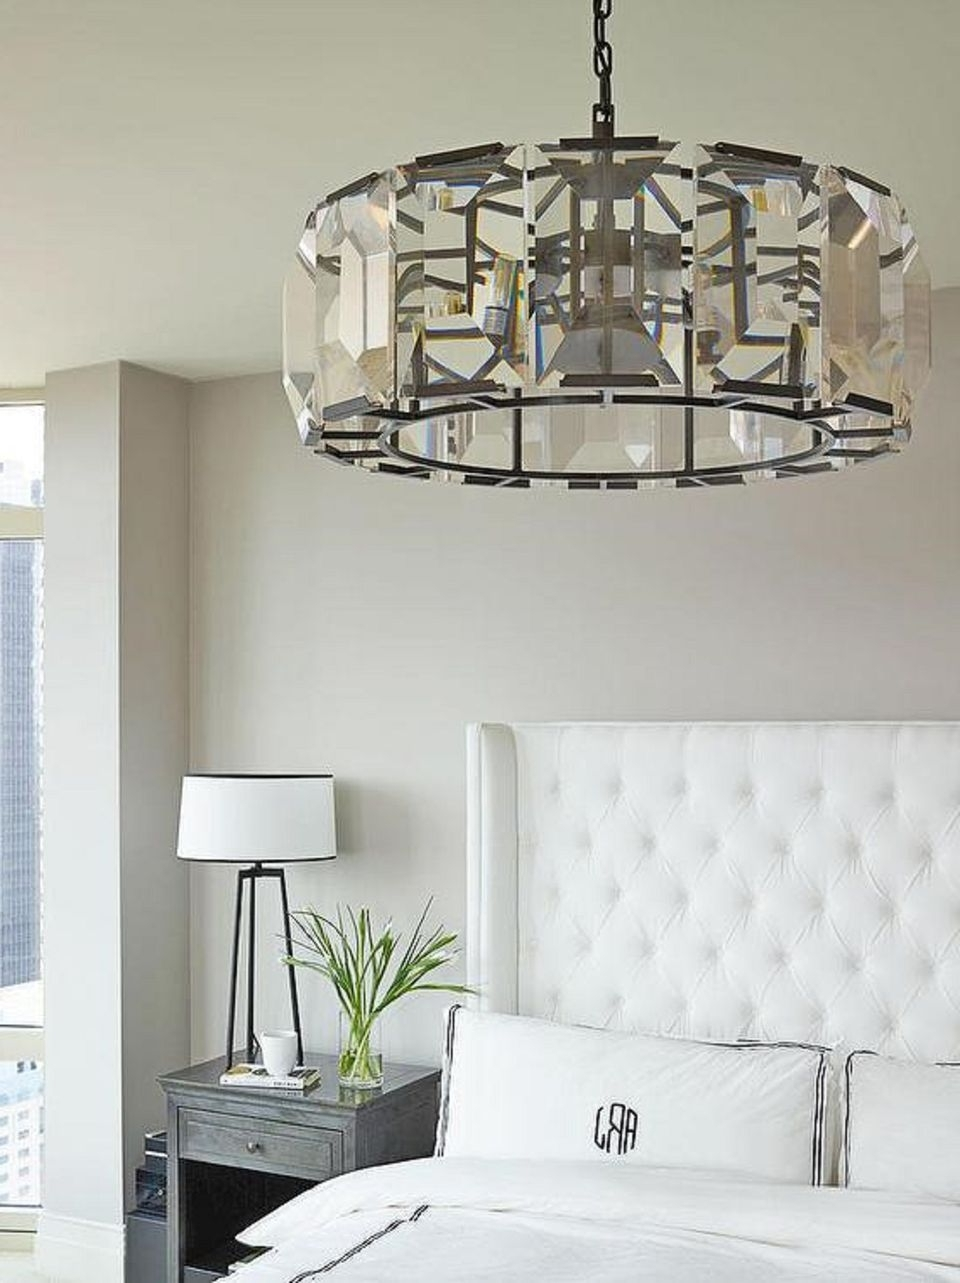 Chandelier Night Stand Lamps For Most Popular 25 Master Bedroom Lighting Ideas (View 11 of 20)